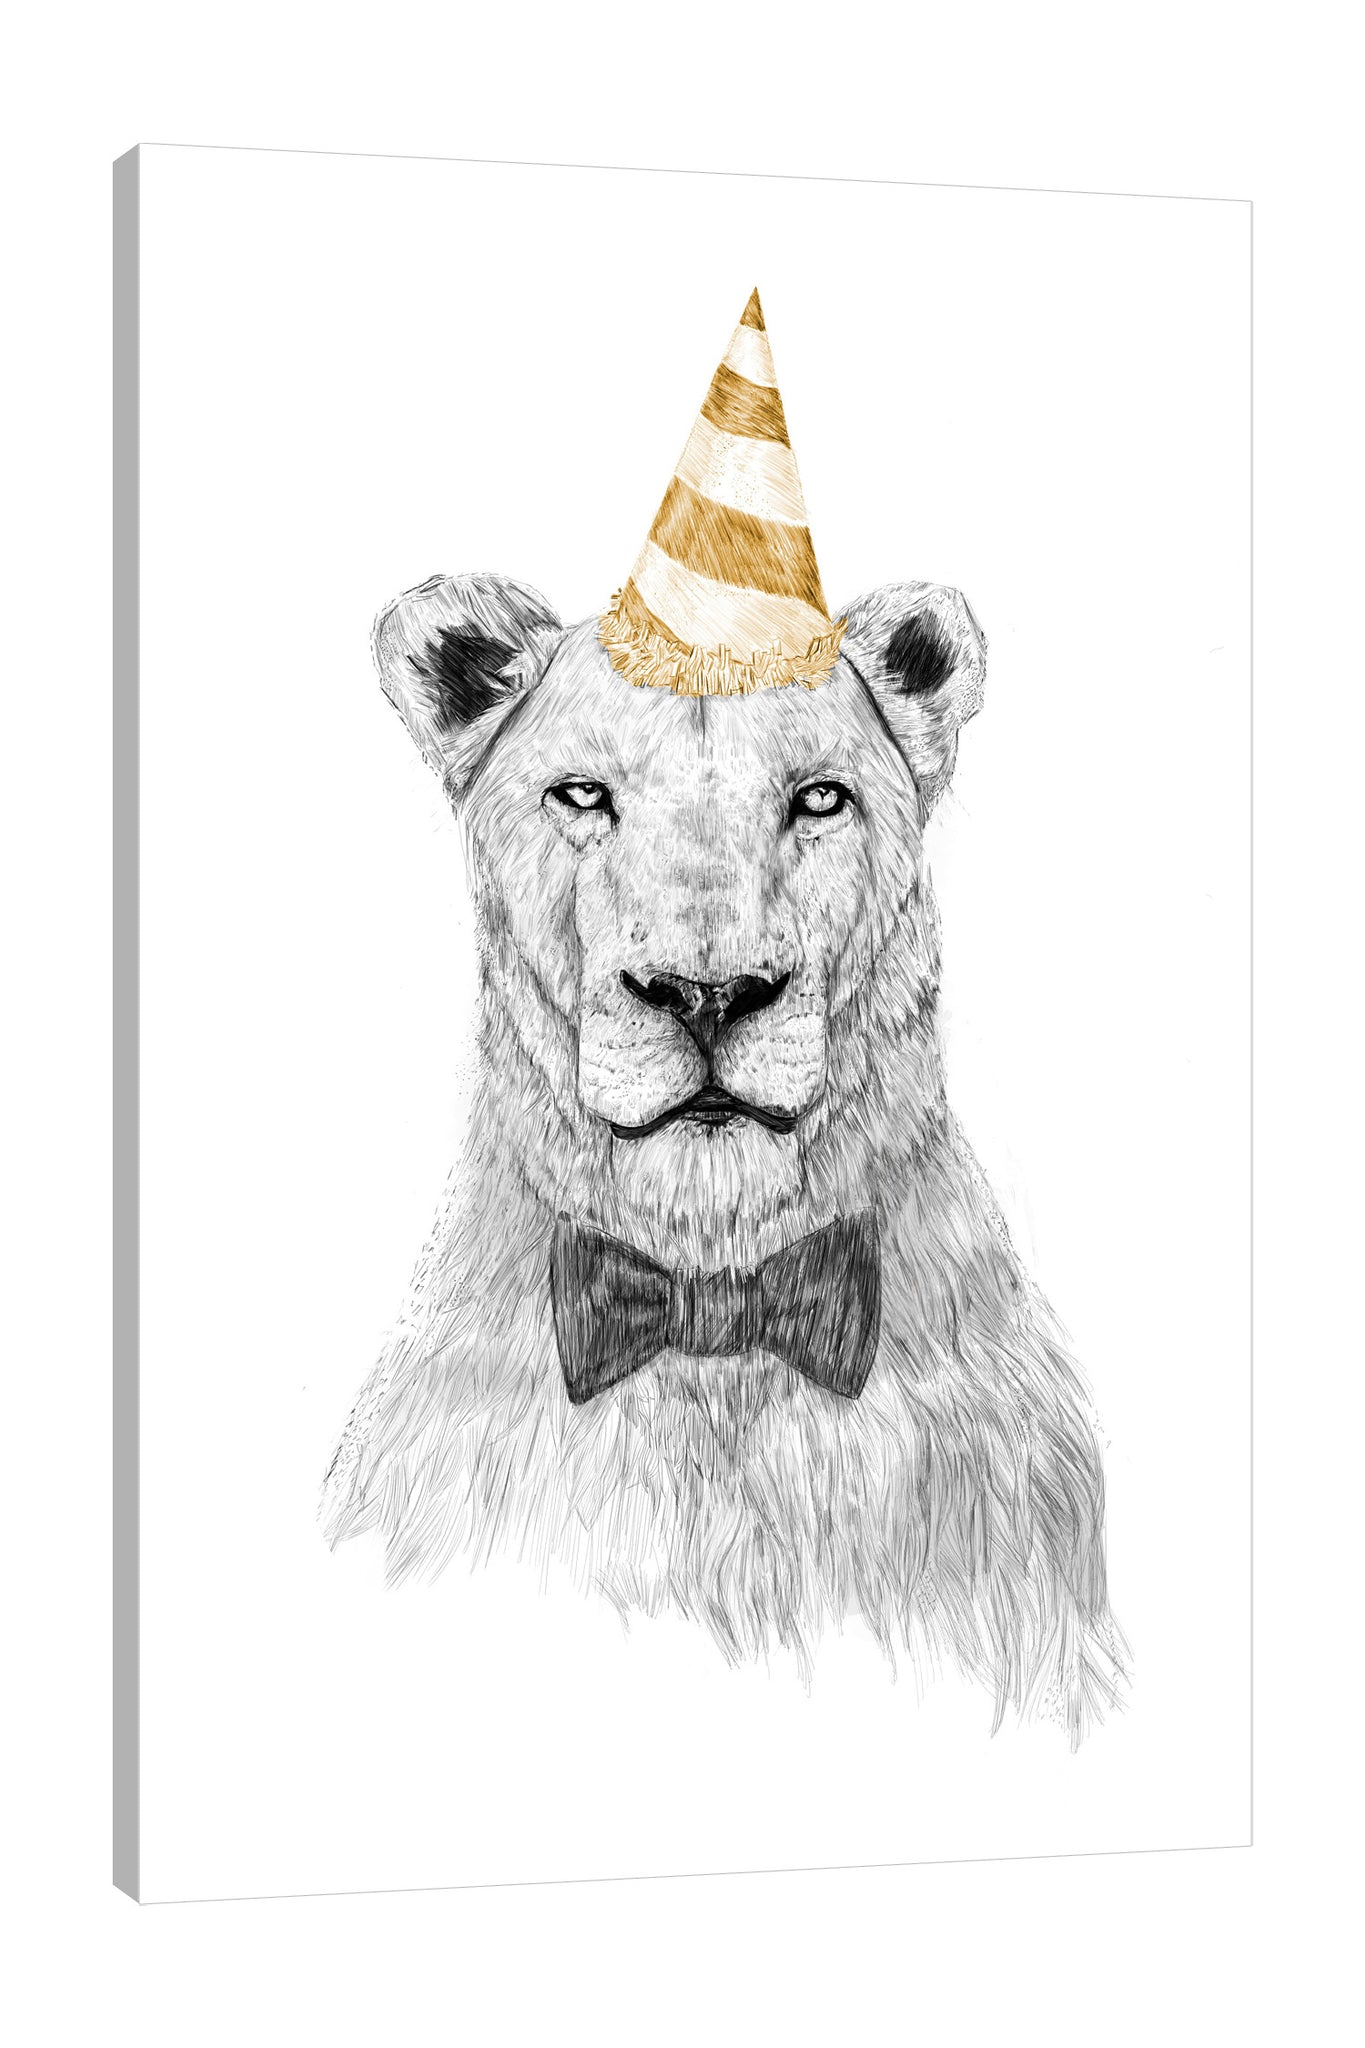 Balazs-Solti,Modern & Contemporary,Animals,Entertainment,animals,animal,lion,lions,bow,bows,party hat,party hats,parties,lines,strokes,line,stroke,black and white,yellow,Blue,White